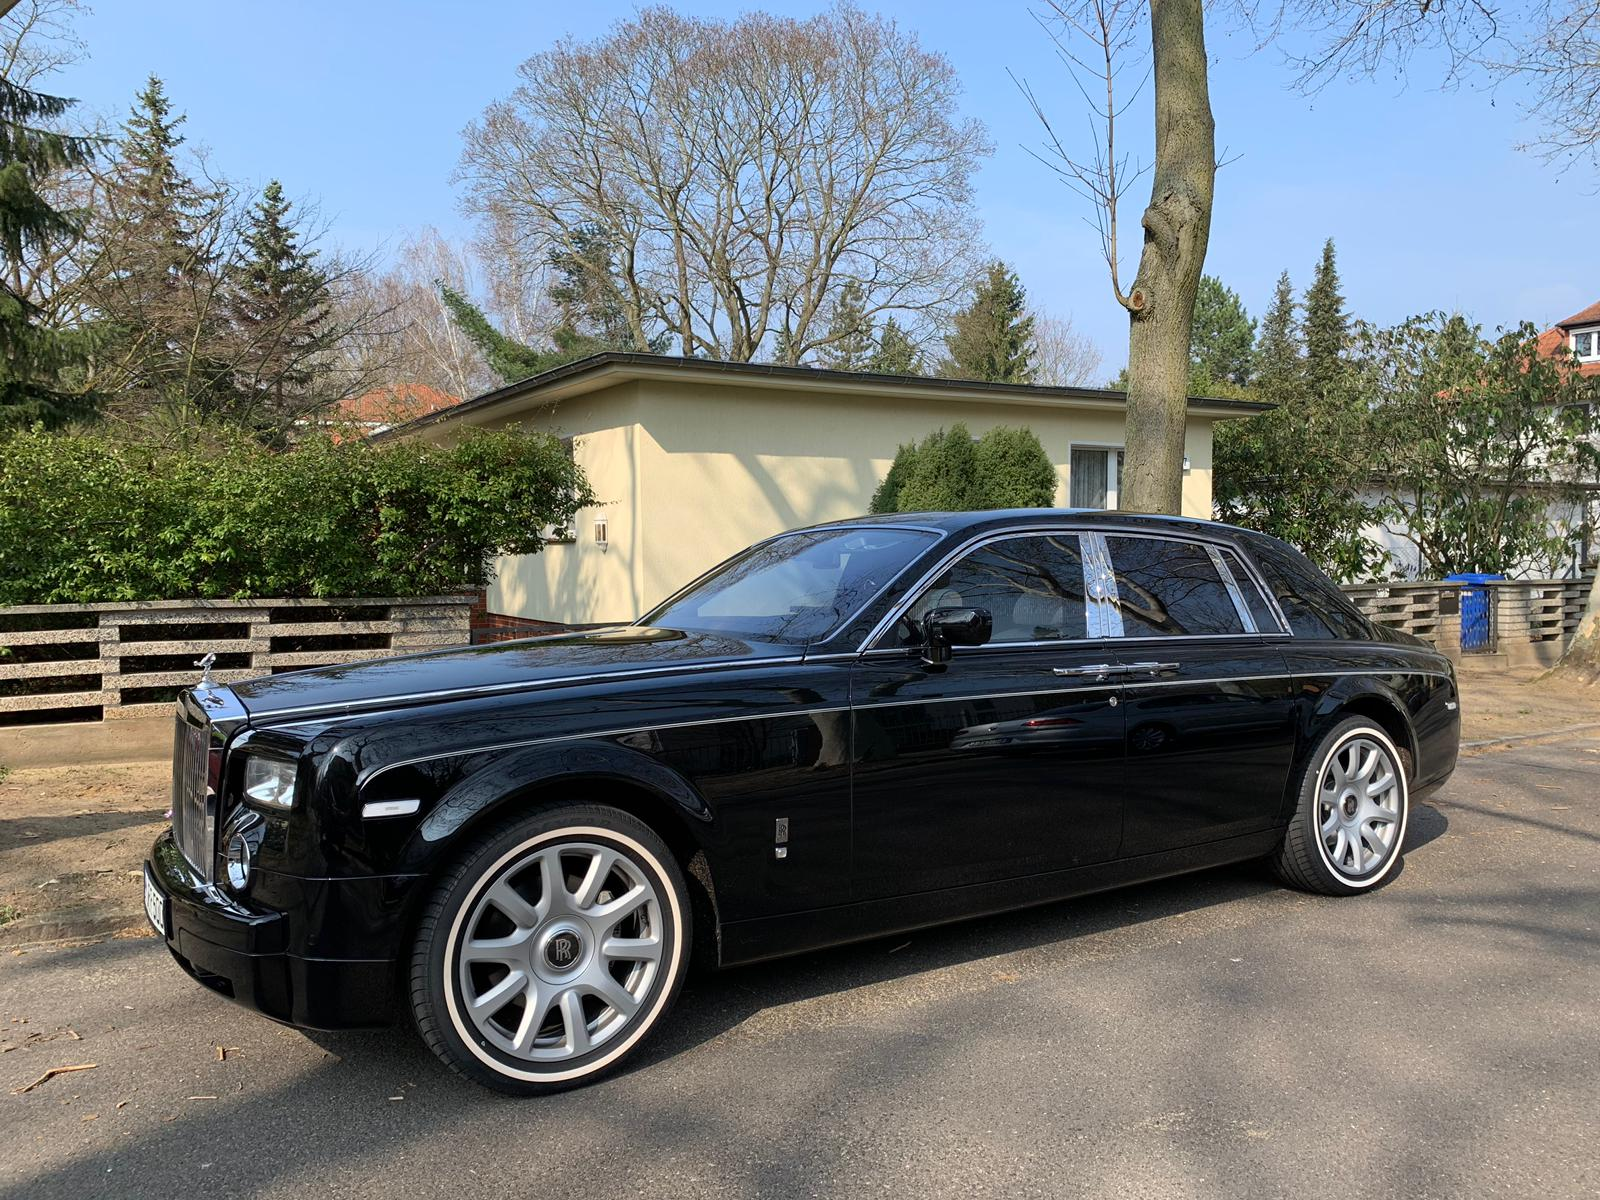 ROLLS ROYCE PHANTOM BLACK EDITION